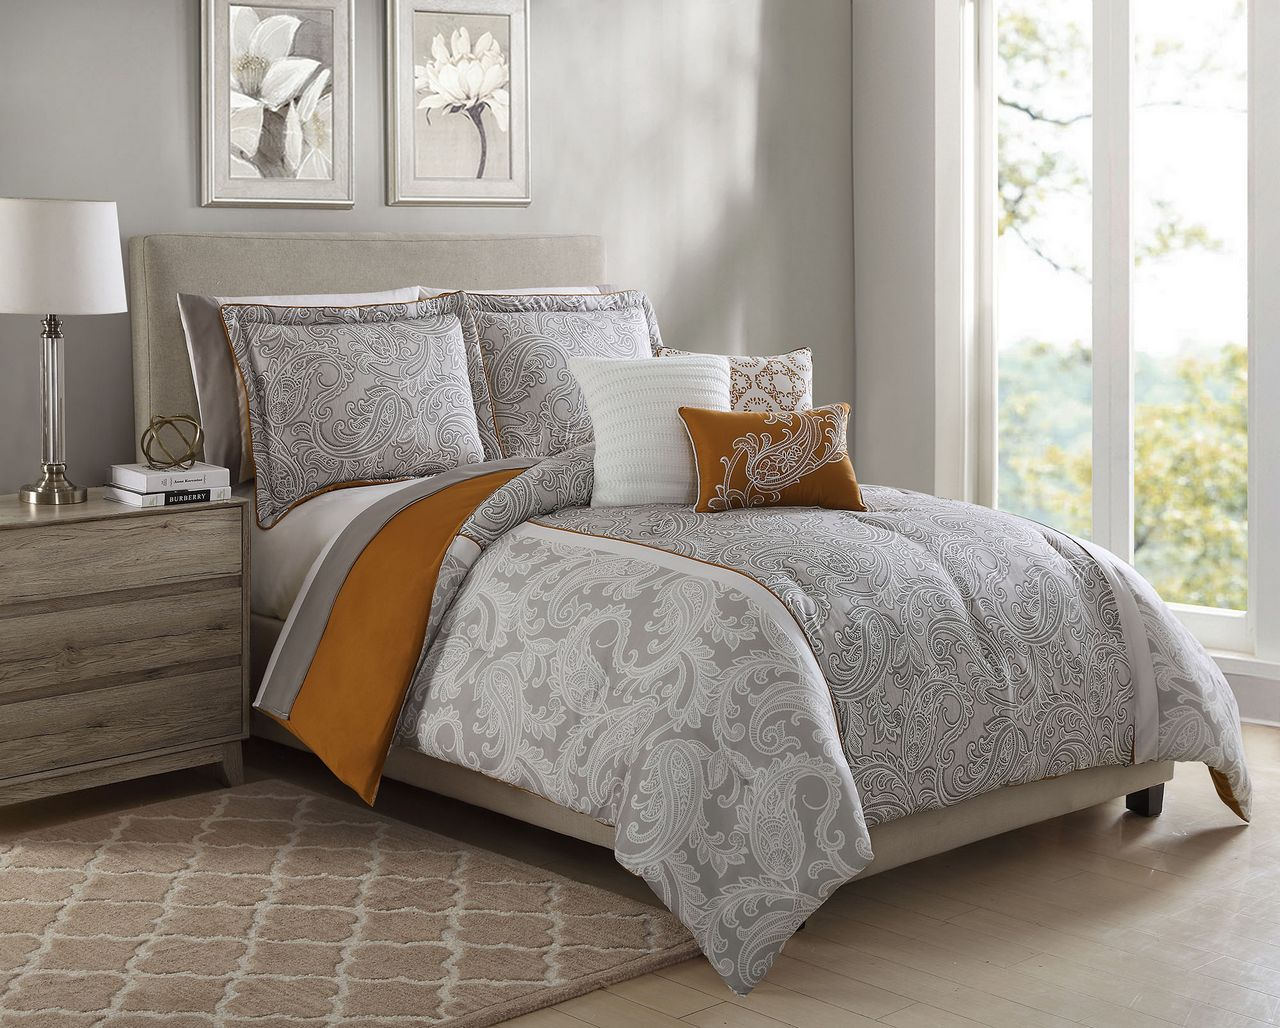 10 Piece Annalise Taupe/Orange/Ivory Comforter Set w/ Sheets